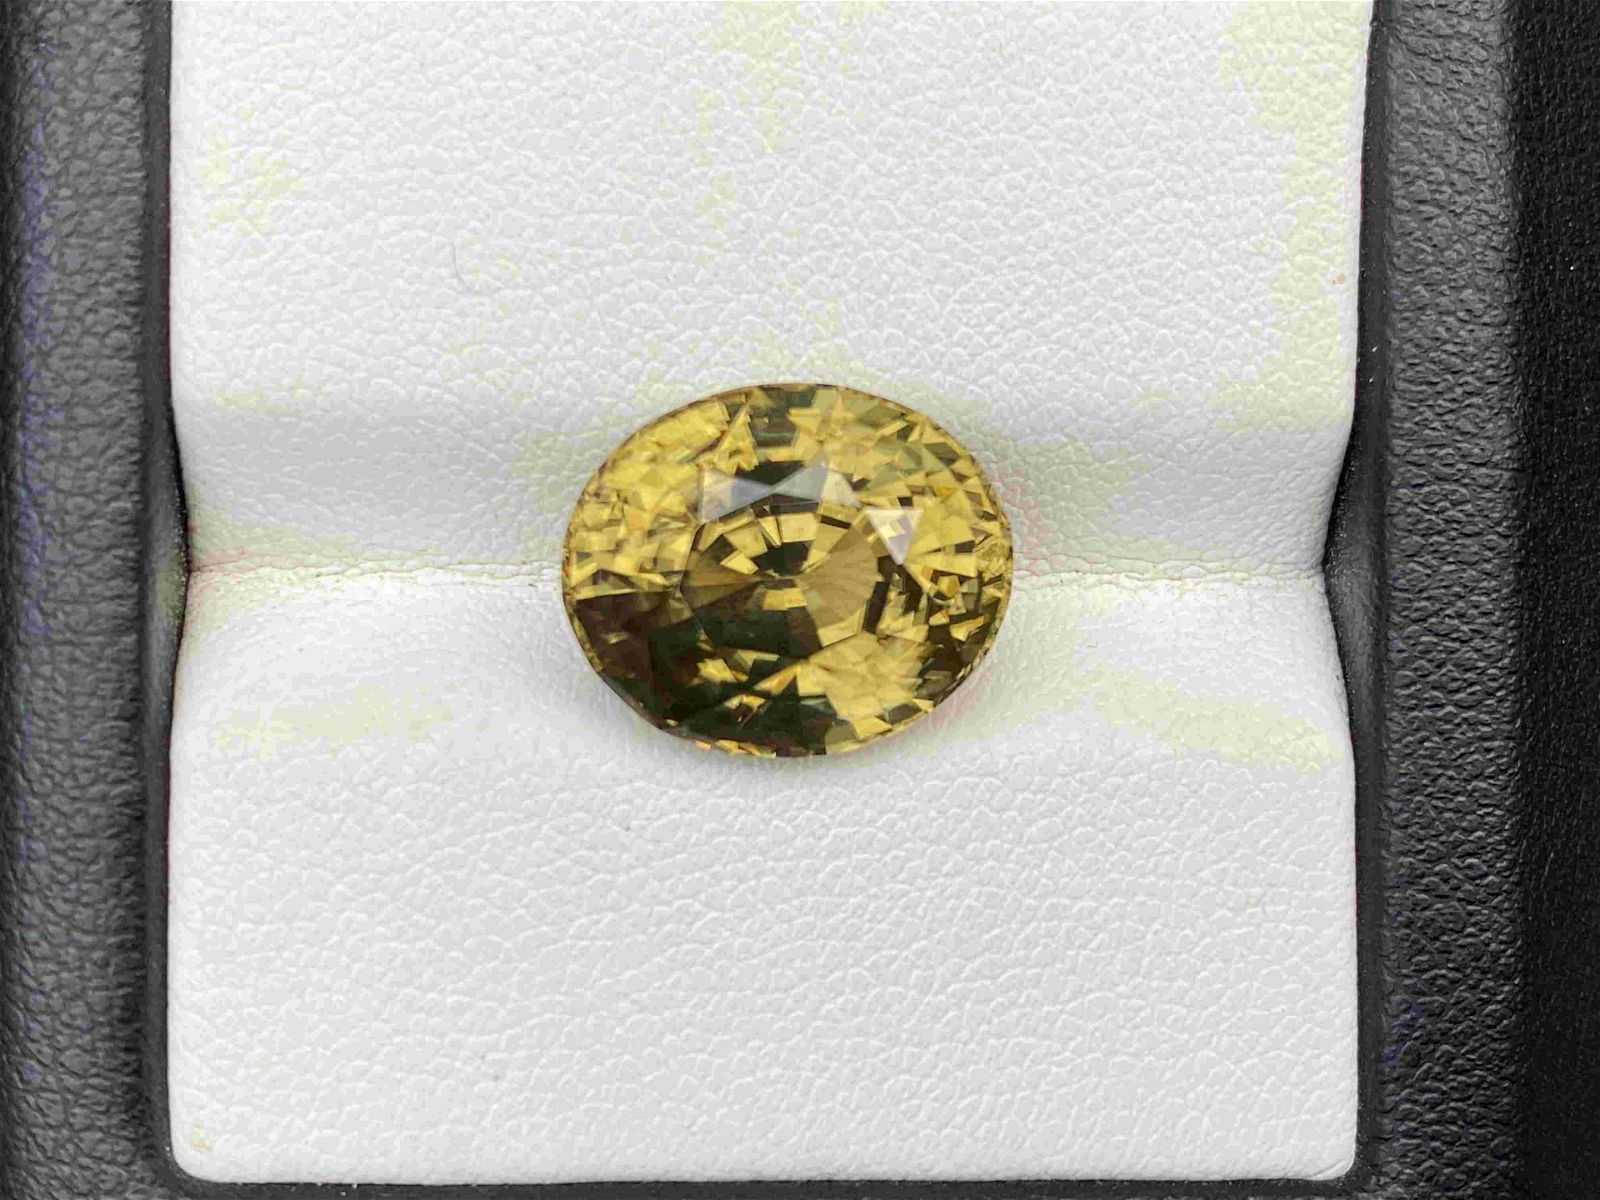 Natural Unheated Yellow Zircon 12.40 Cts Oval Cut Loose